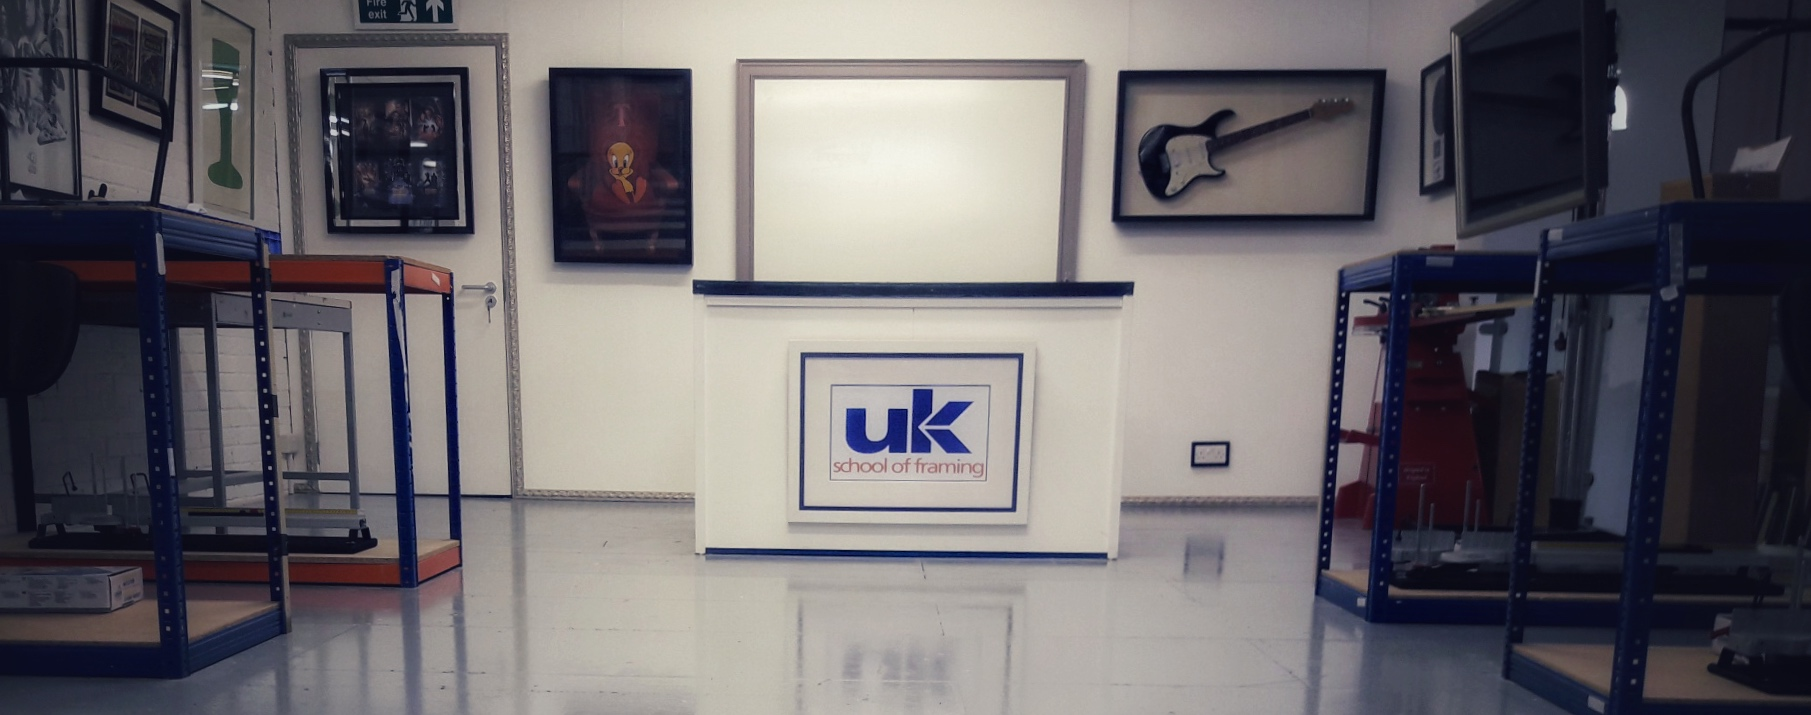 UK School of Framing